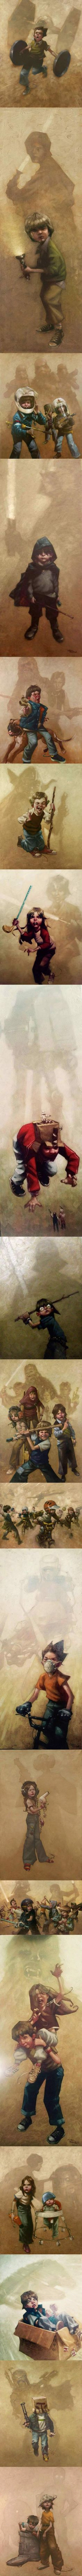 A Long Time Ago, In A Cul De Sac Far Far Away... by Craig Davison | I love it. It totally sums up a kid imagination.